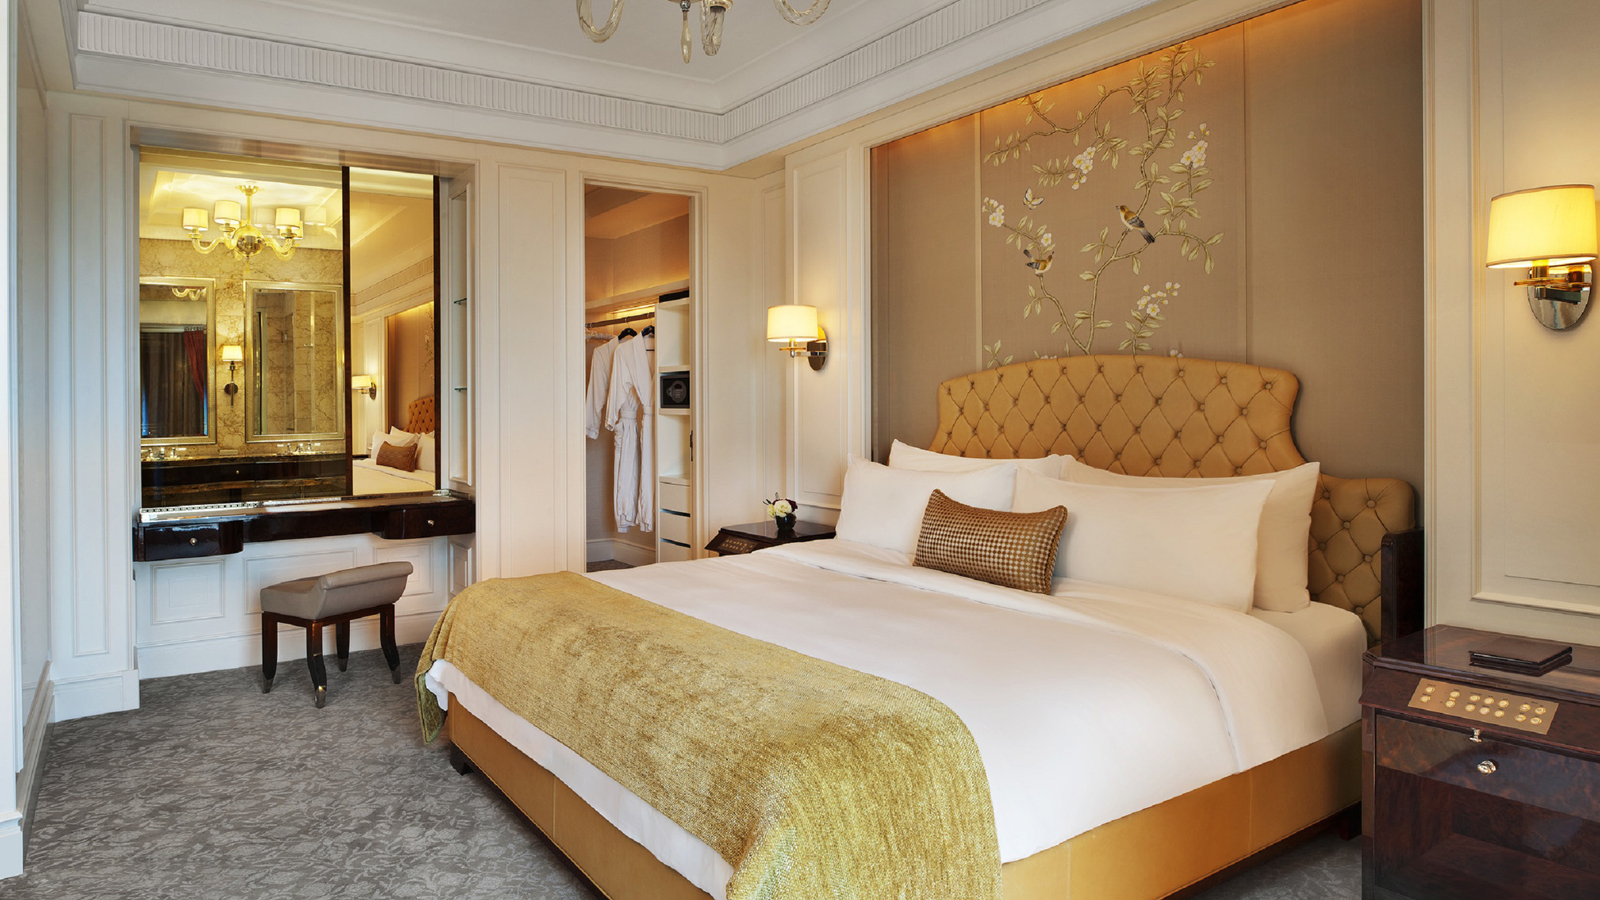 10 Luxury Hotels In Singapore With Staycation Deals You Can't Resist